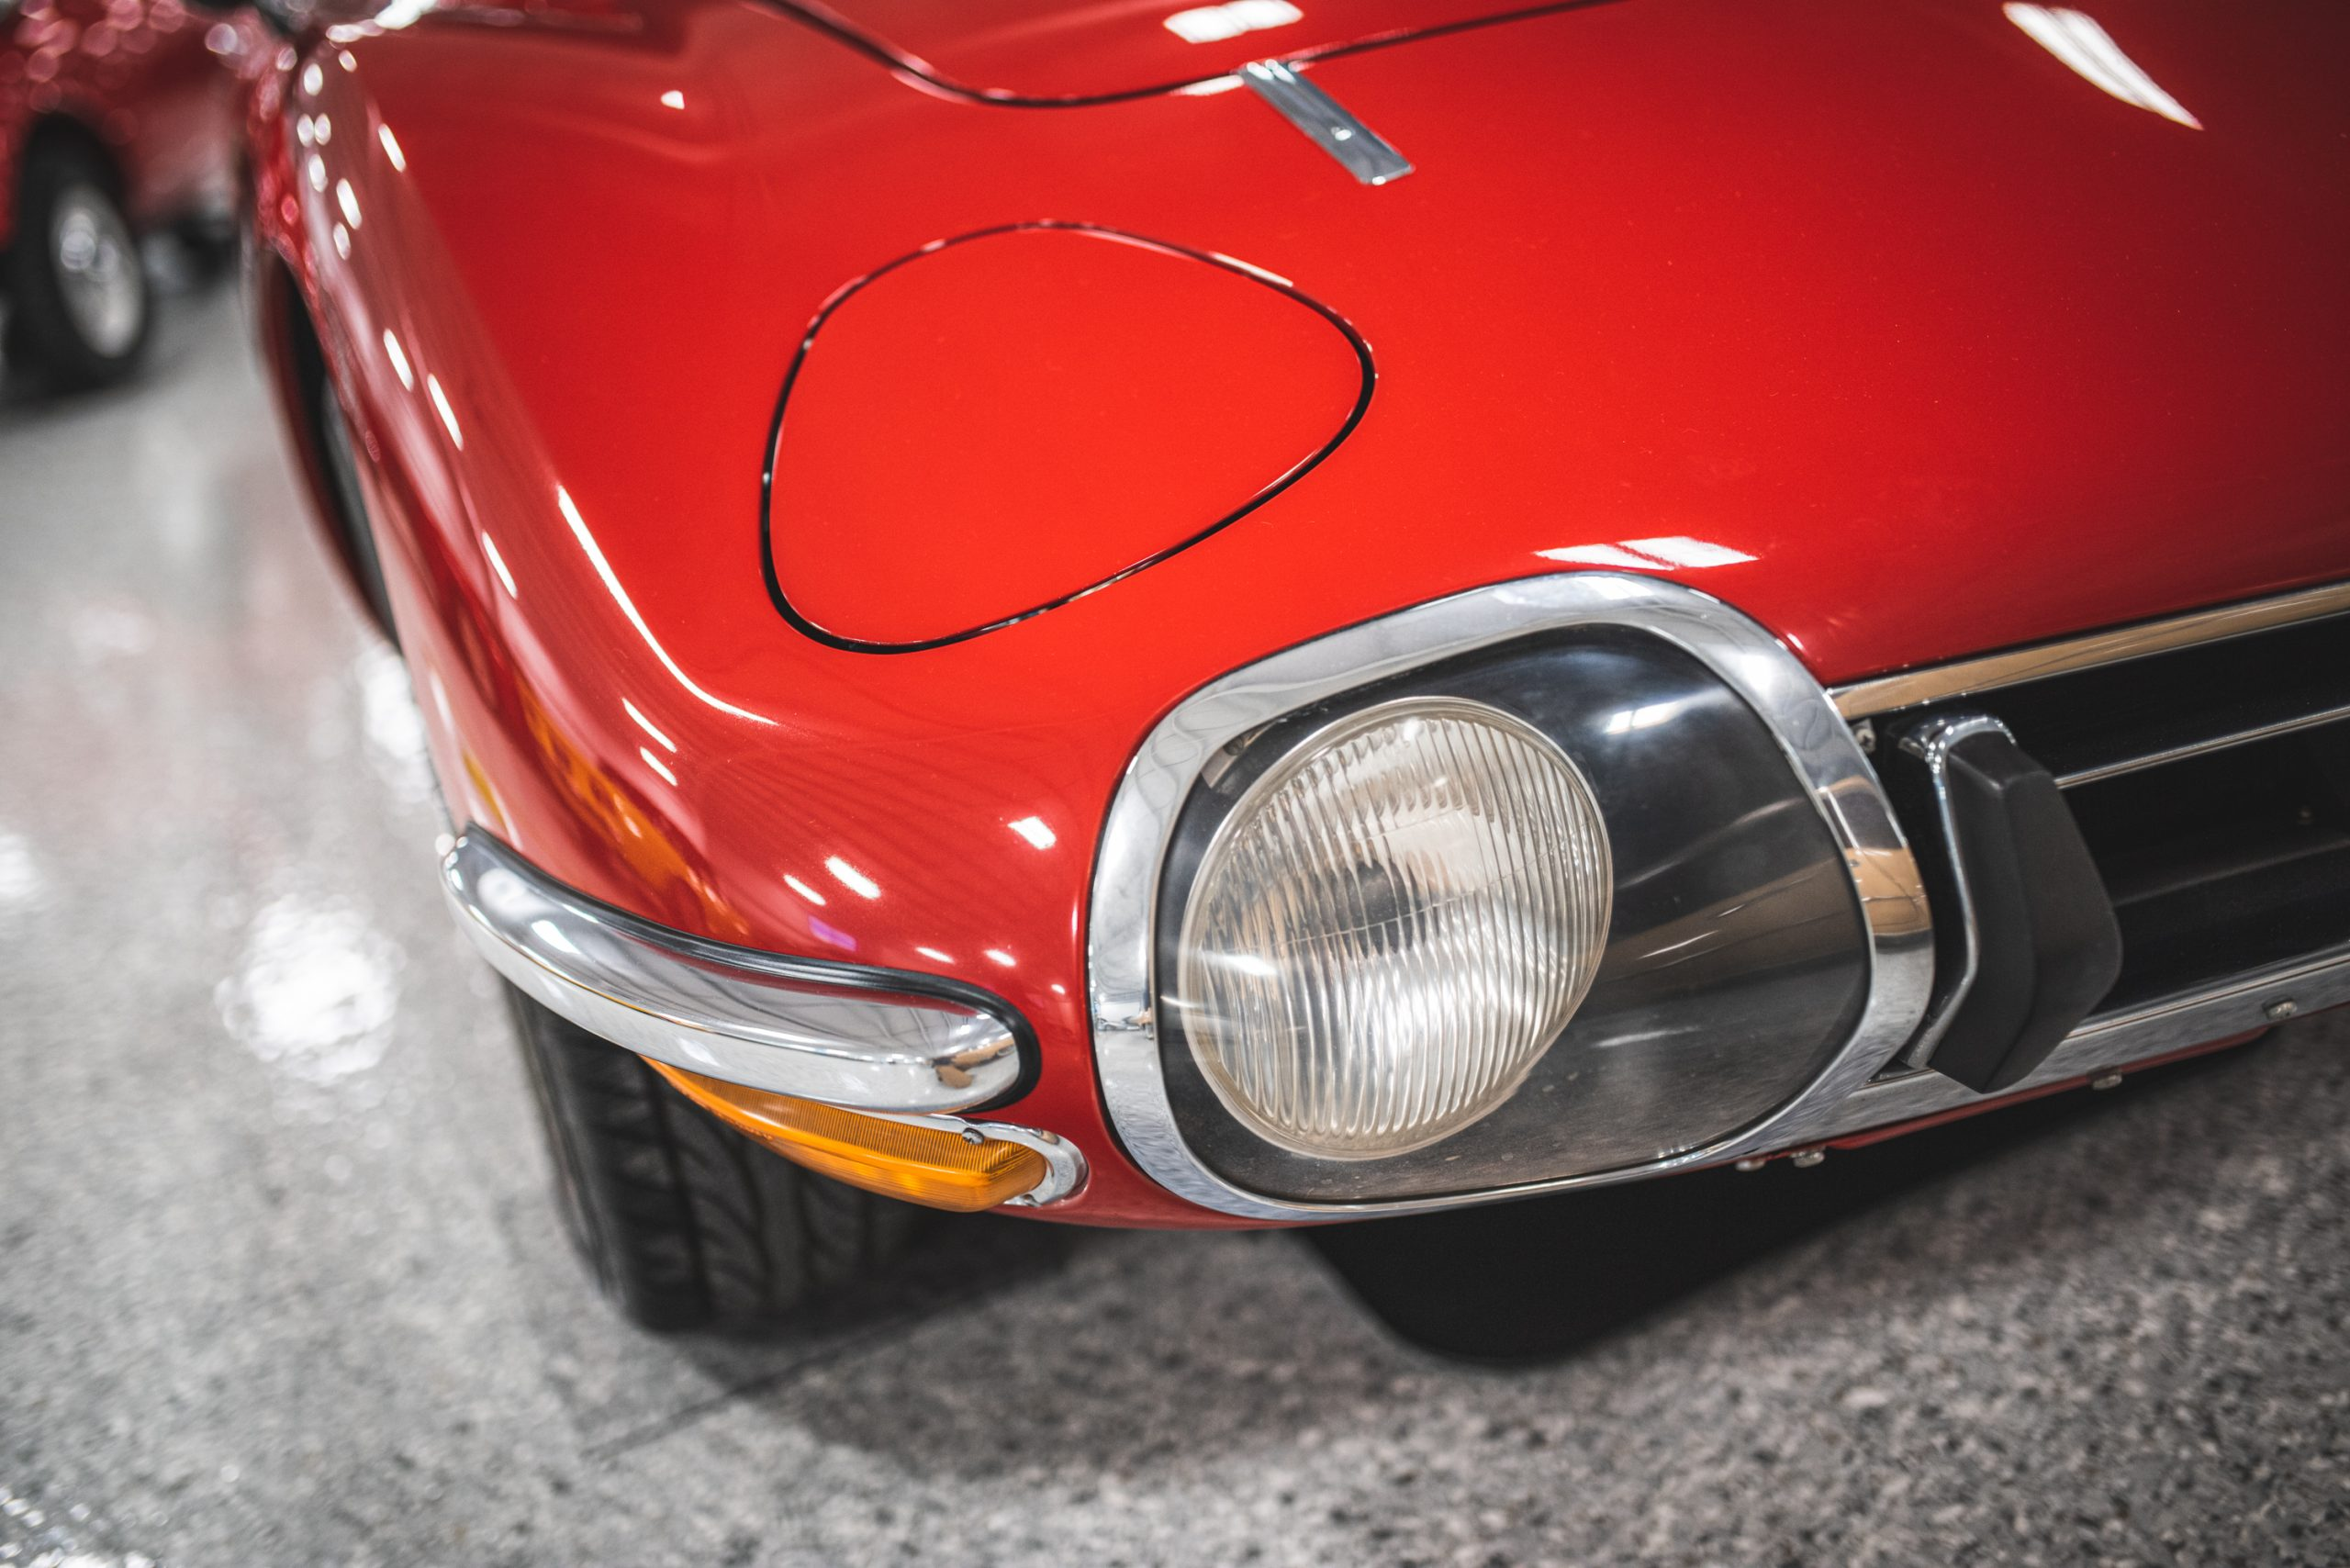 toyota 2000 gt front lights close up